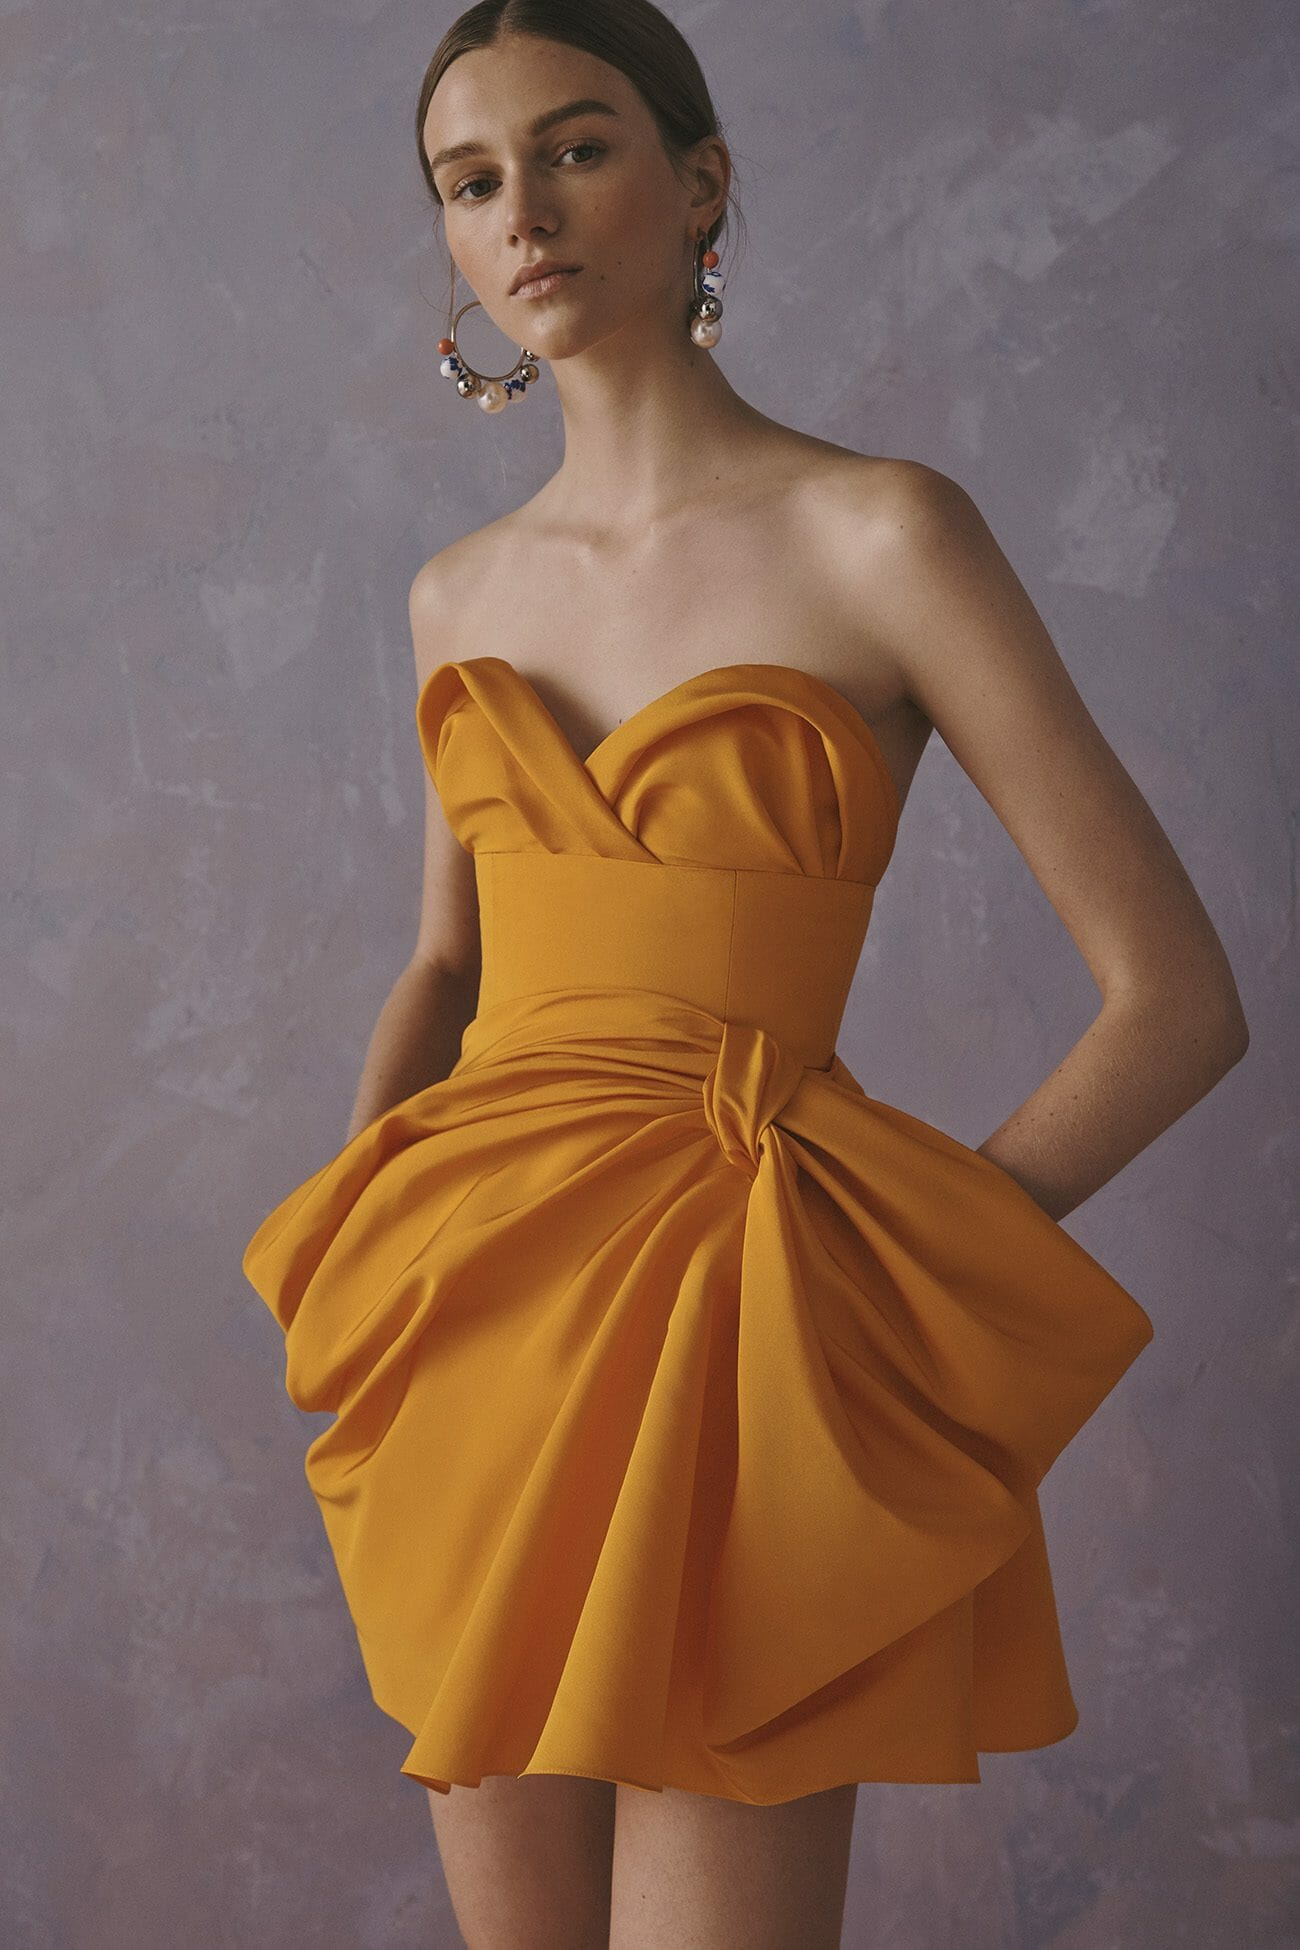 Carolina Herrera New York Resort 2020 Coleção yellow cocktail dress strapless necklines